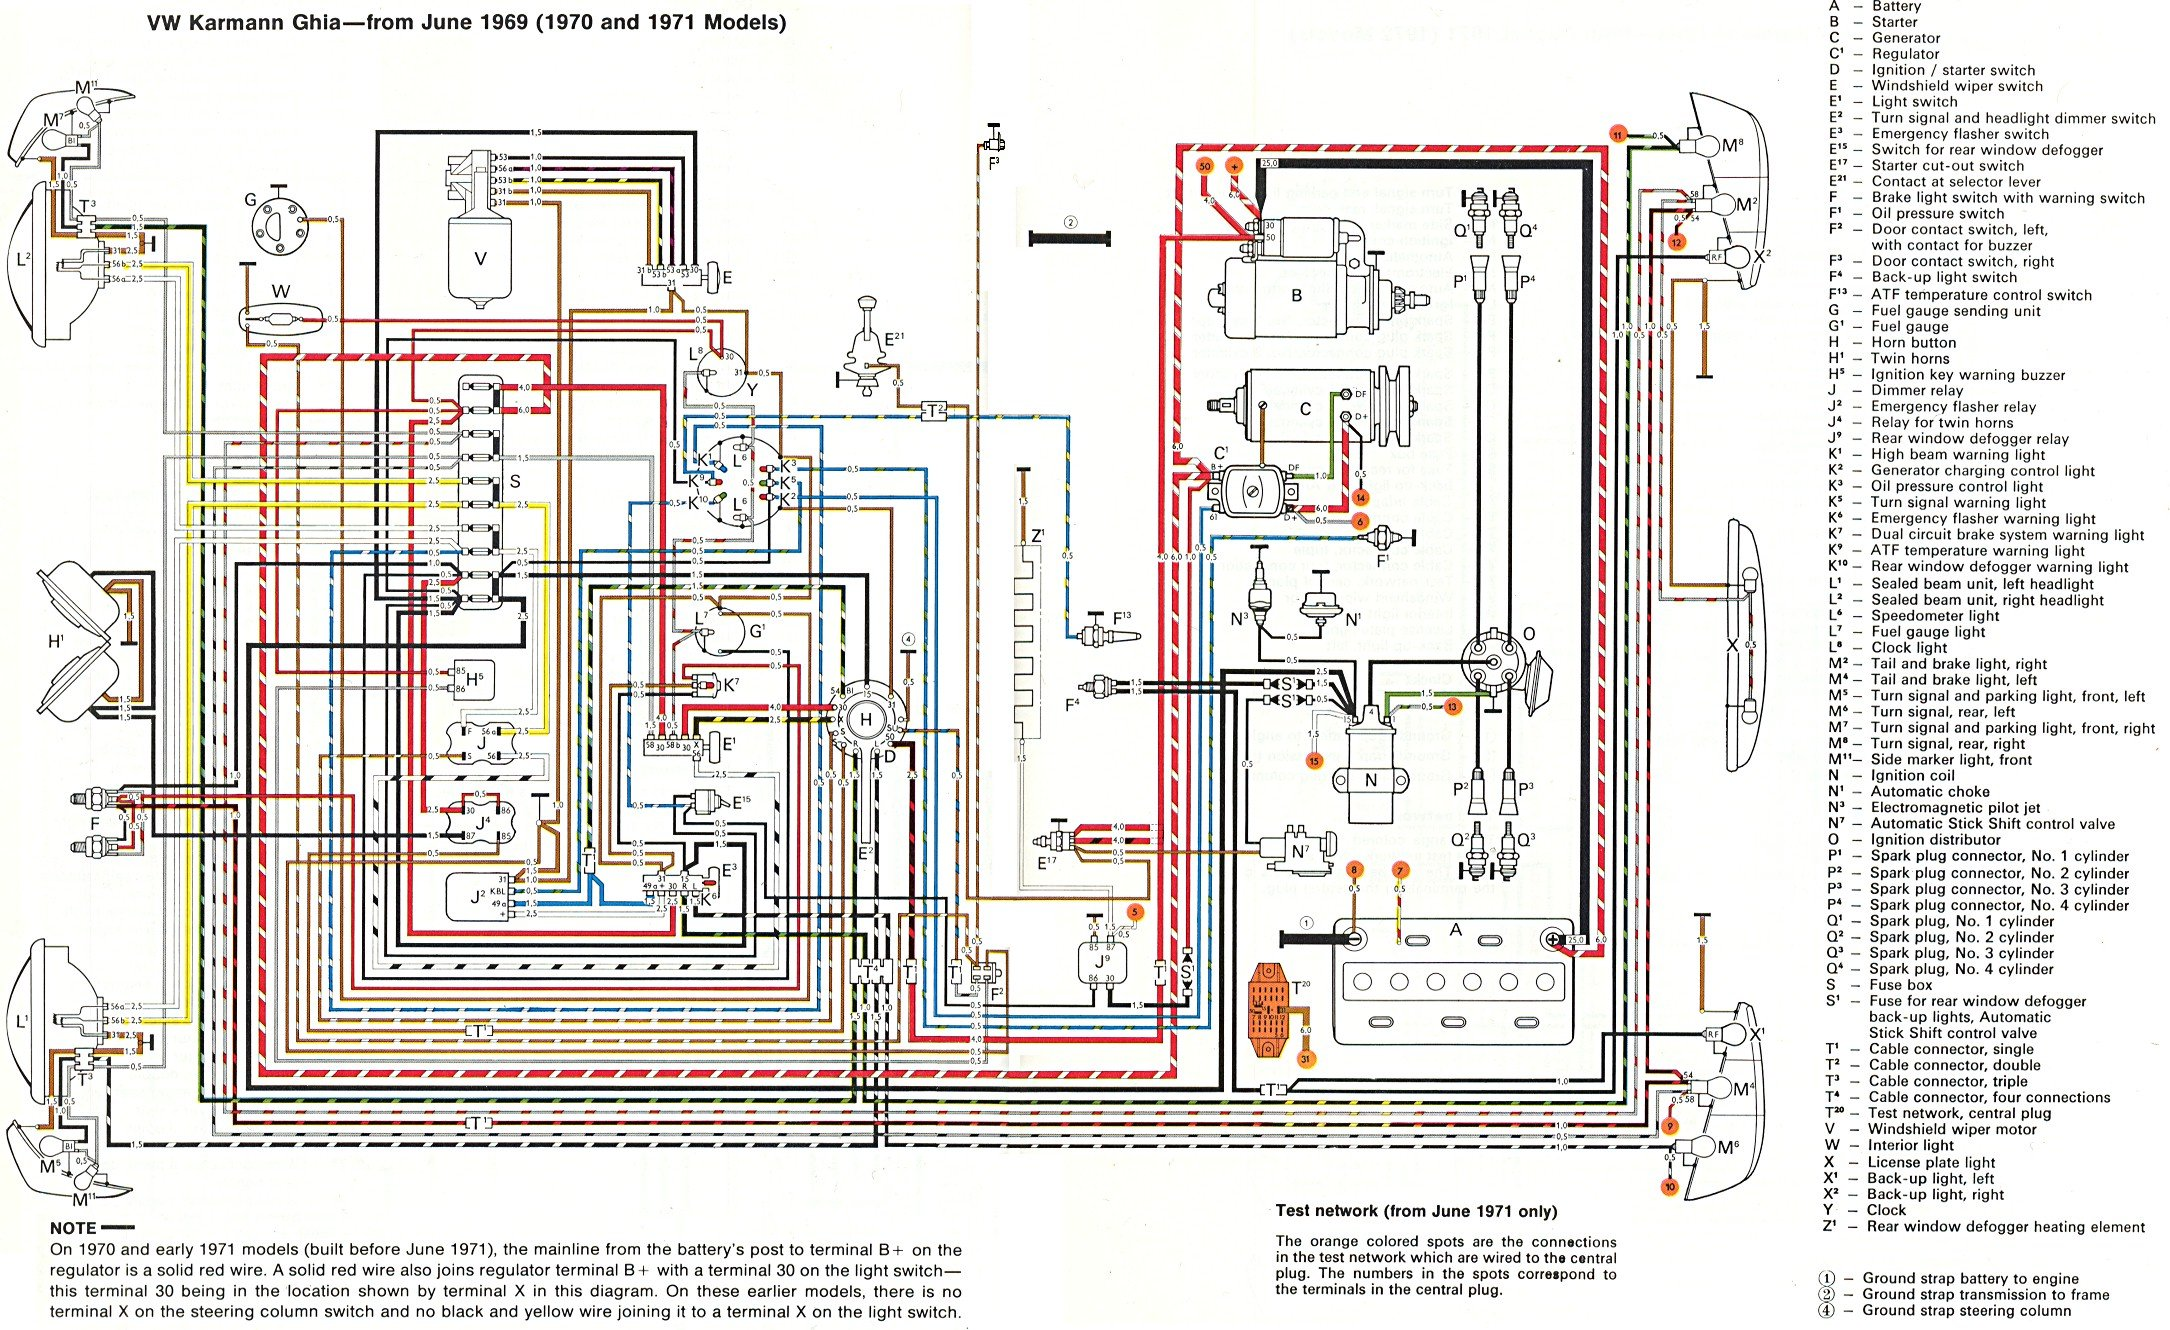 Karmann Ghia Engine Wiring Diagrams Trusted Schematics Dual Xhdr6435 Wire Harness Thesamba Com Rh 1970 Diagram Cover